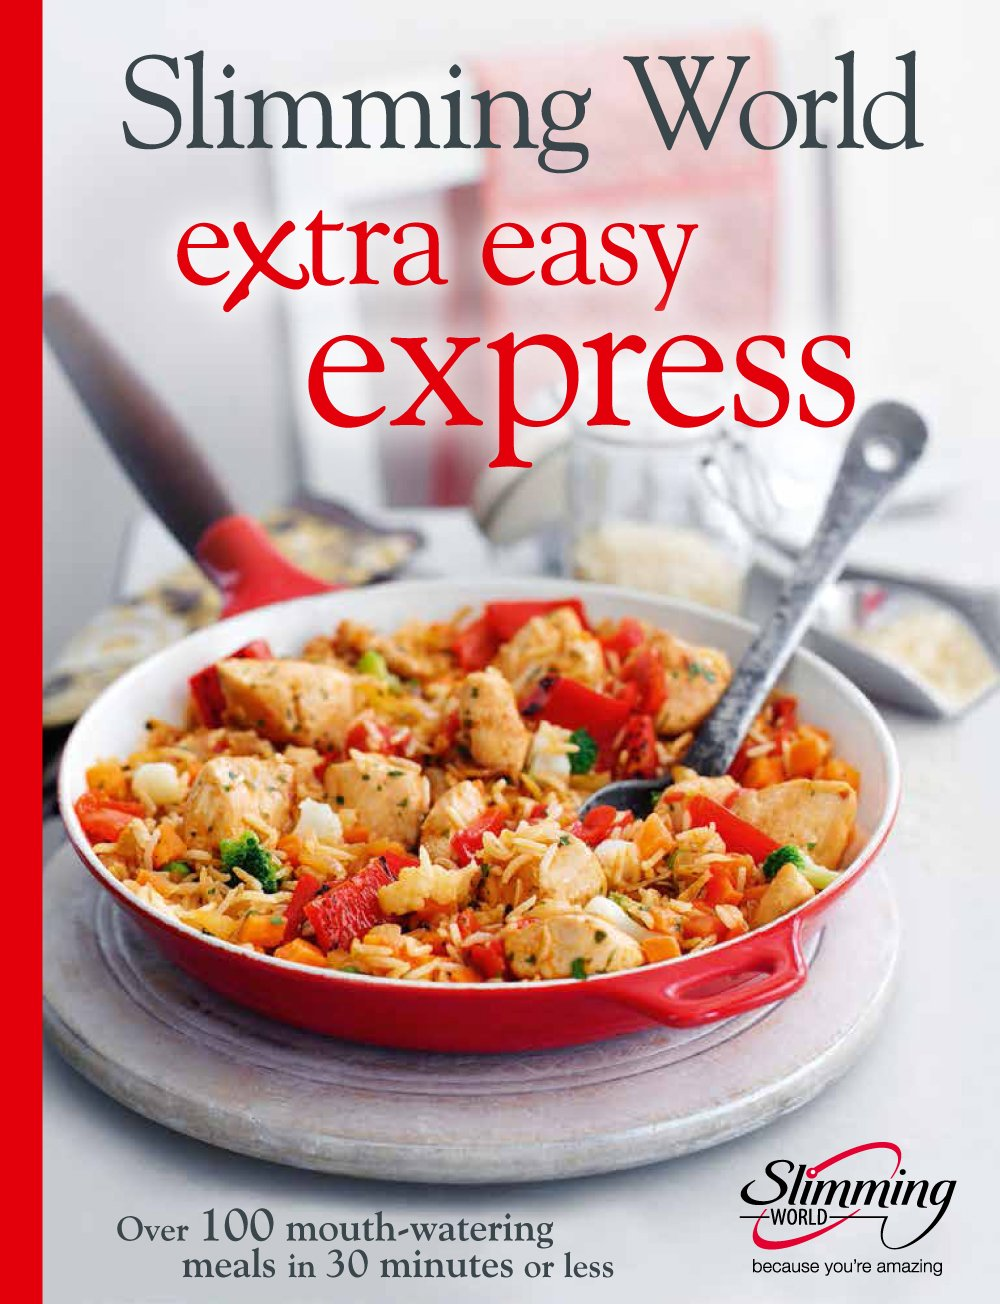 Slimming world extra easy express amazon slimming world slimming world extra easy express amazon slimming world 9781908256348 books forumfinder